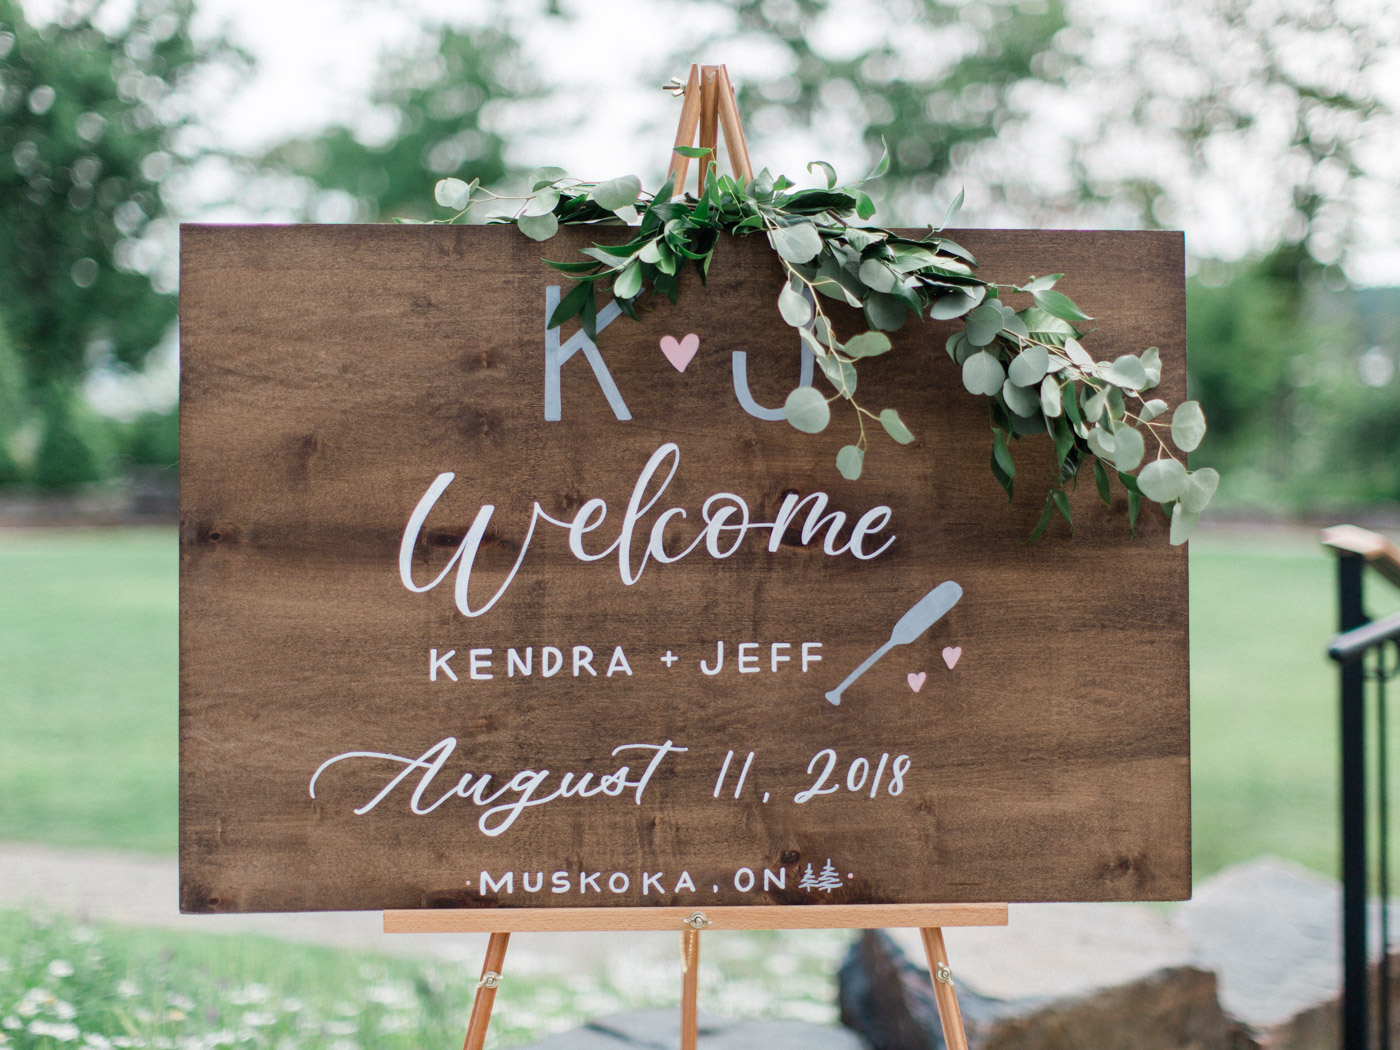 Fine art details at cottage inspired wedding at J.W. Marriott Rosseau, Muskoka.  Captured by Muskoka wedding photographer Corynn Fowler Photography.